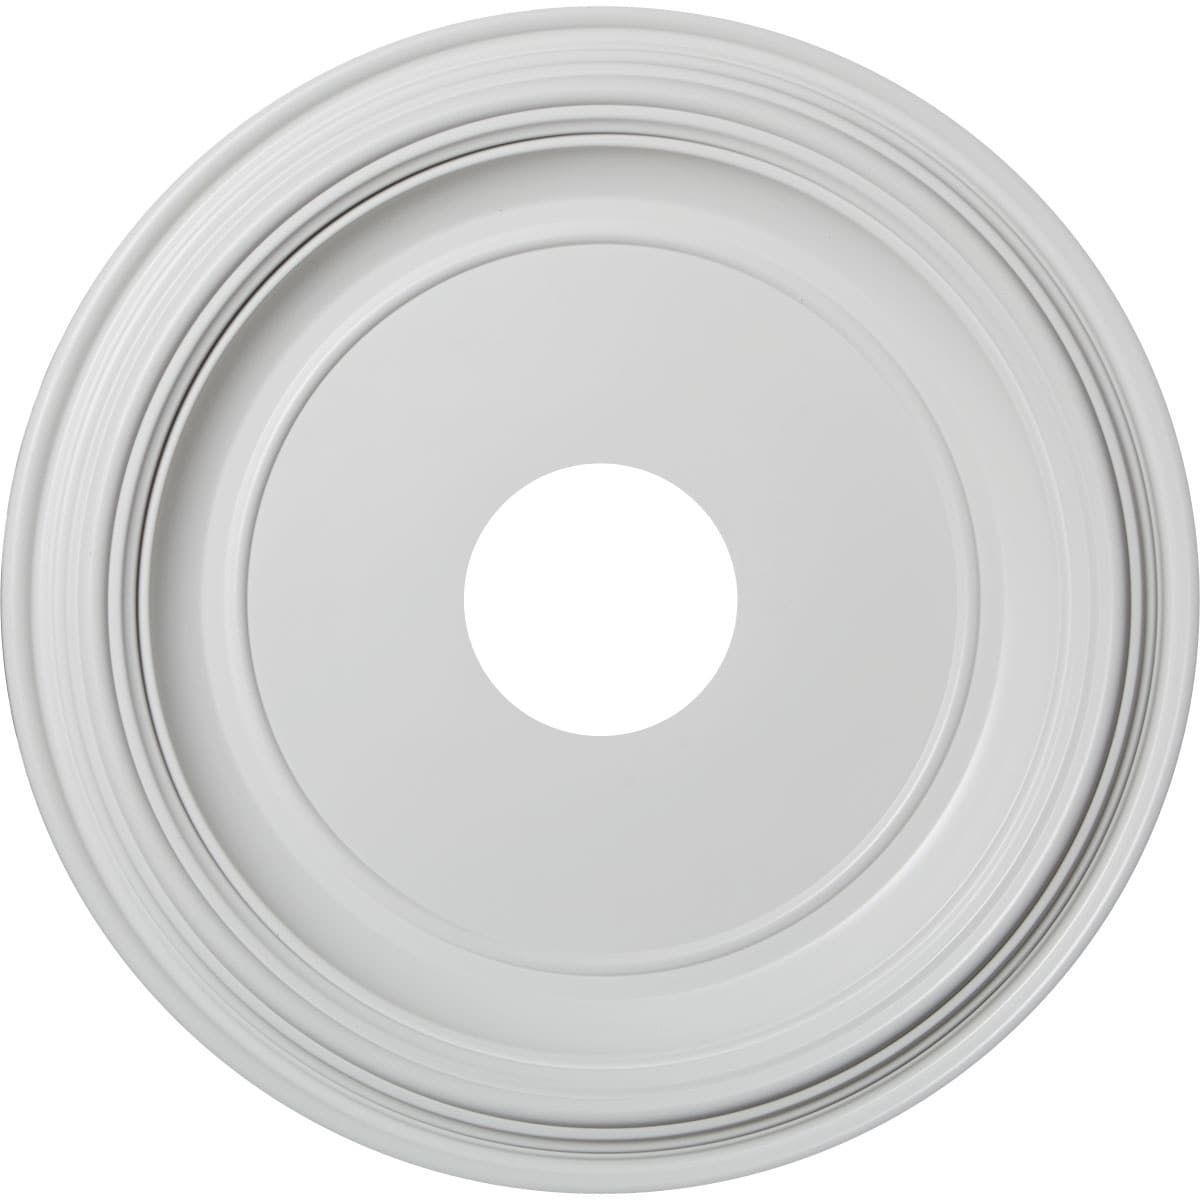 8 P Traditional Pvc Ceiling Medallion